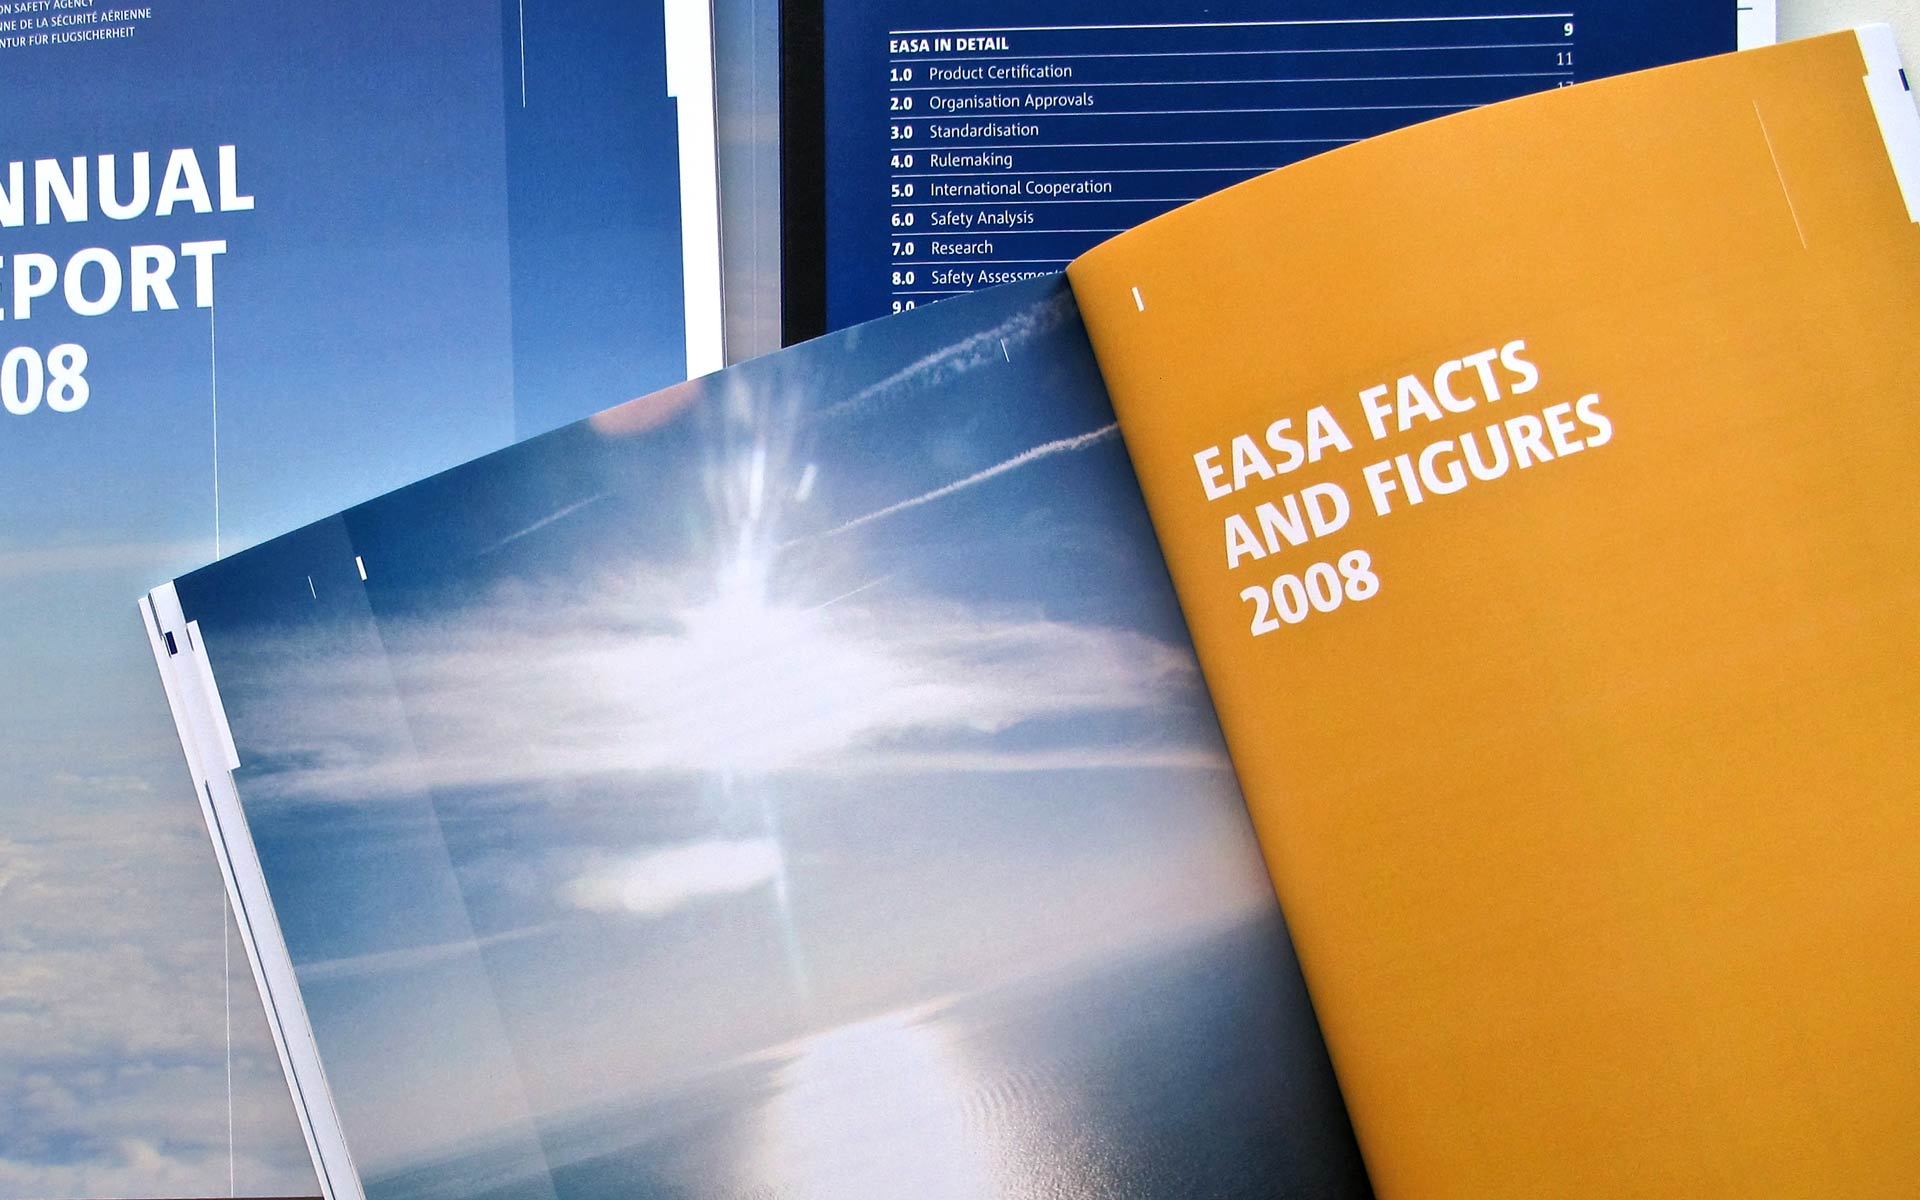 EASA Corporate Publishing, Annual Report, Doppelseite